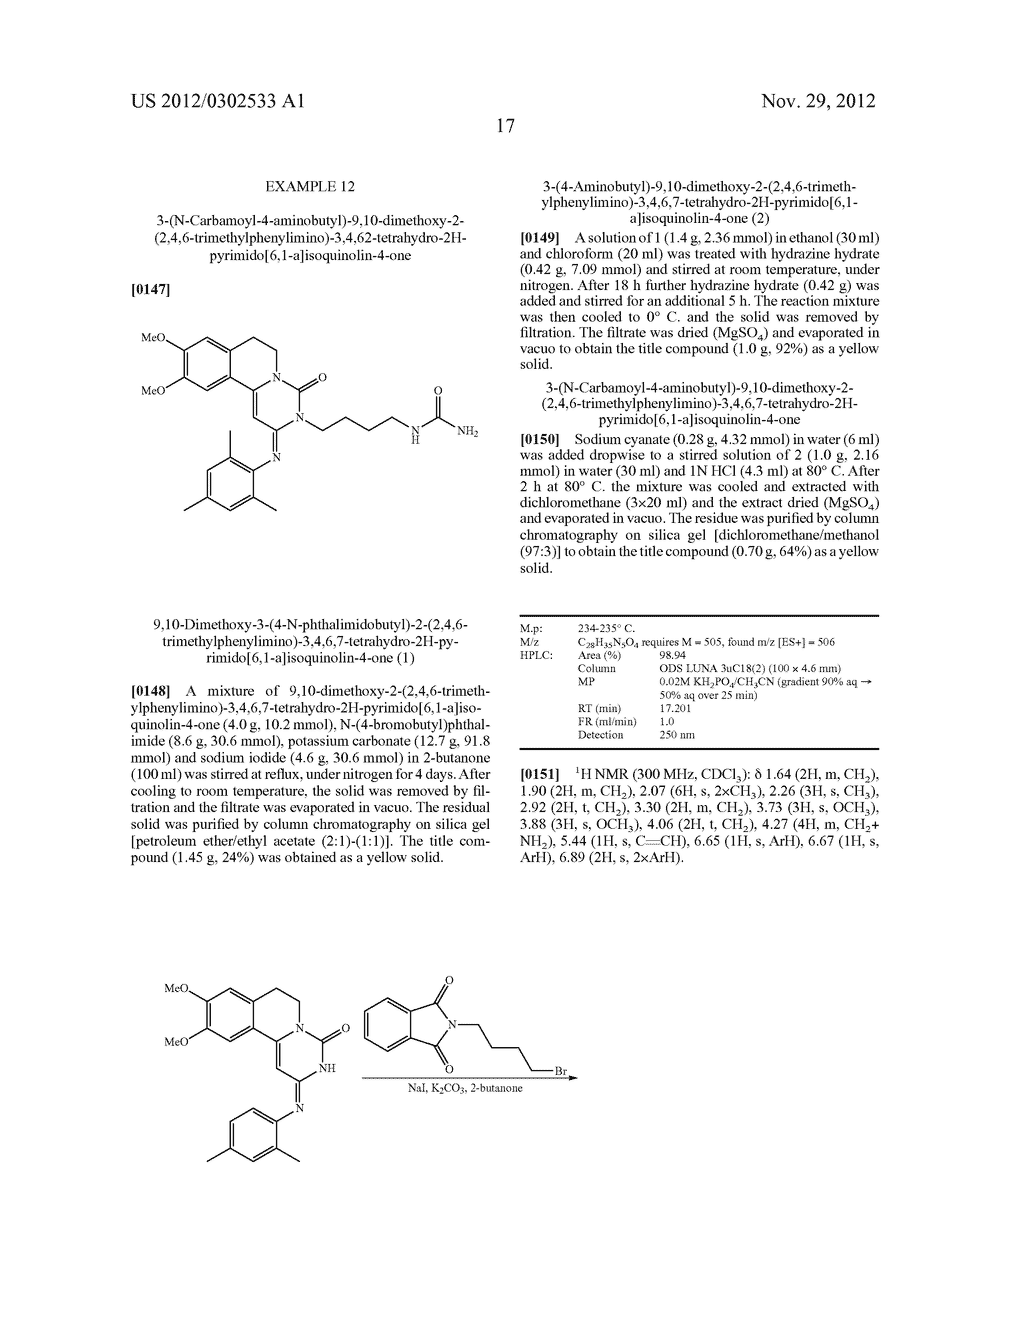 DERIVATIVES OF PYRIMIDO [6,1-A] ISOQUINOLIN-4-ONE - diagram, schematic, and image 23